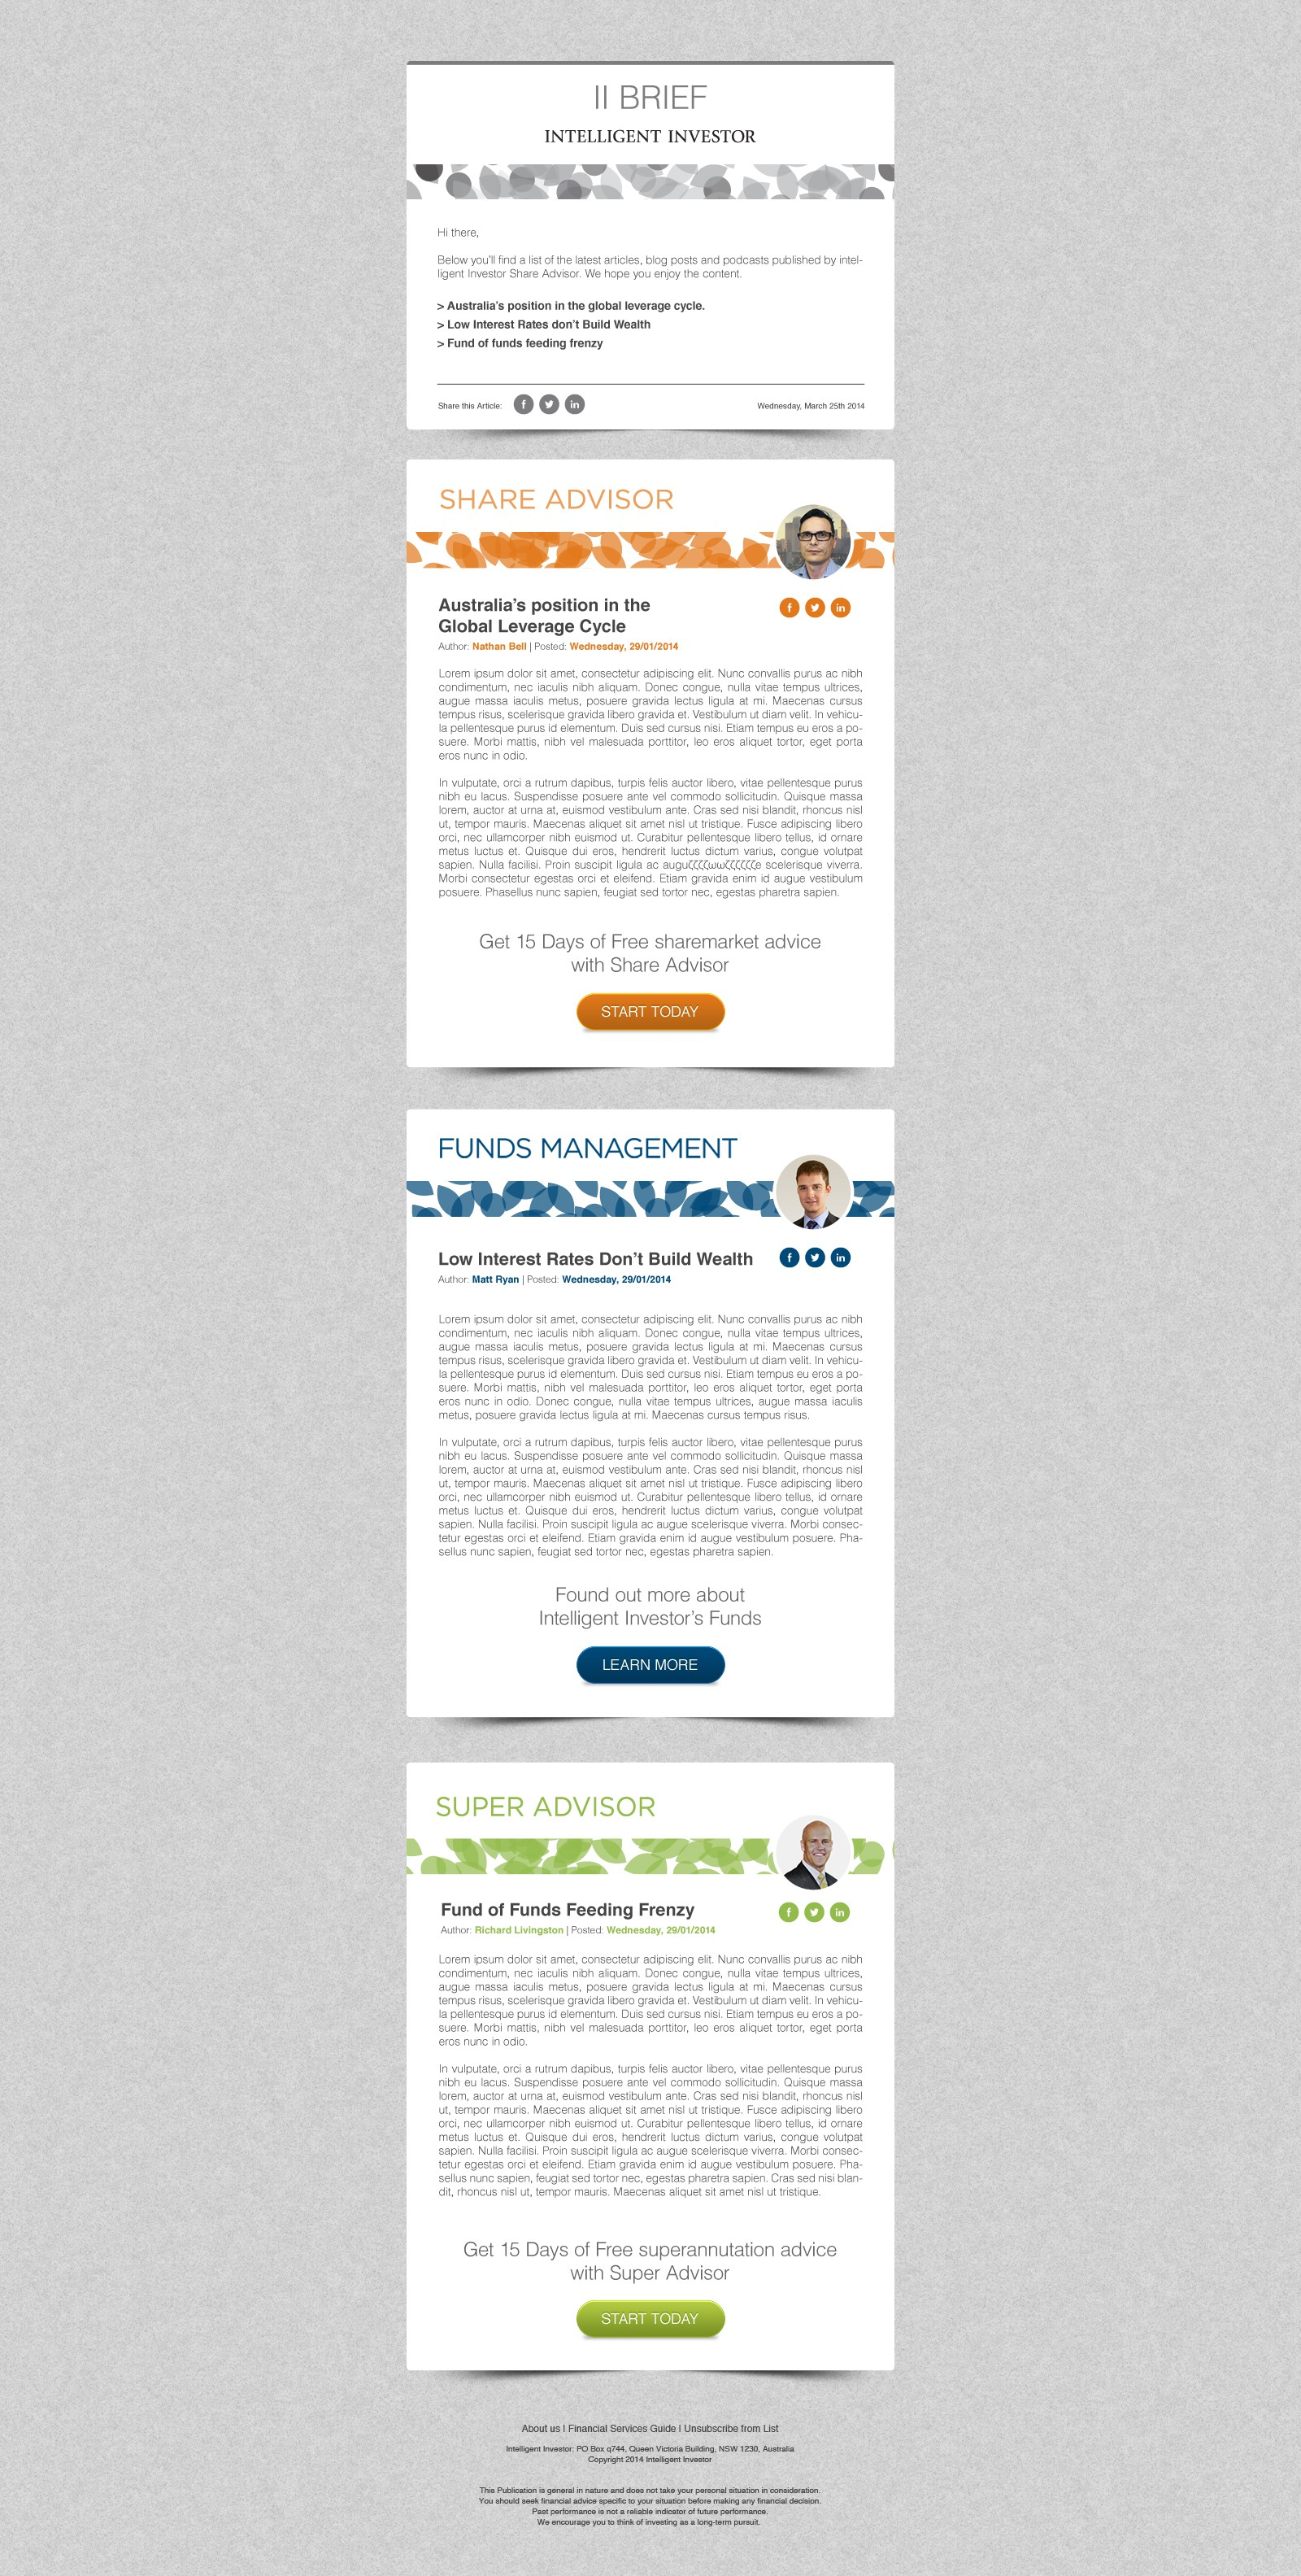 Create a weekly email newsletter template for Intelligent Investor